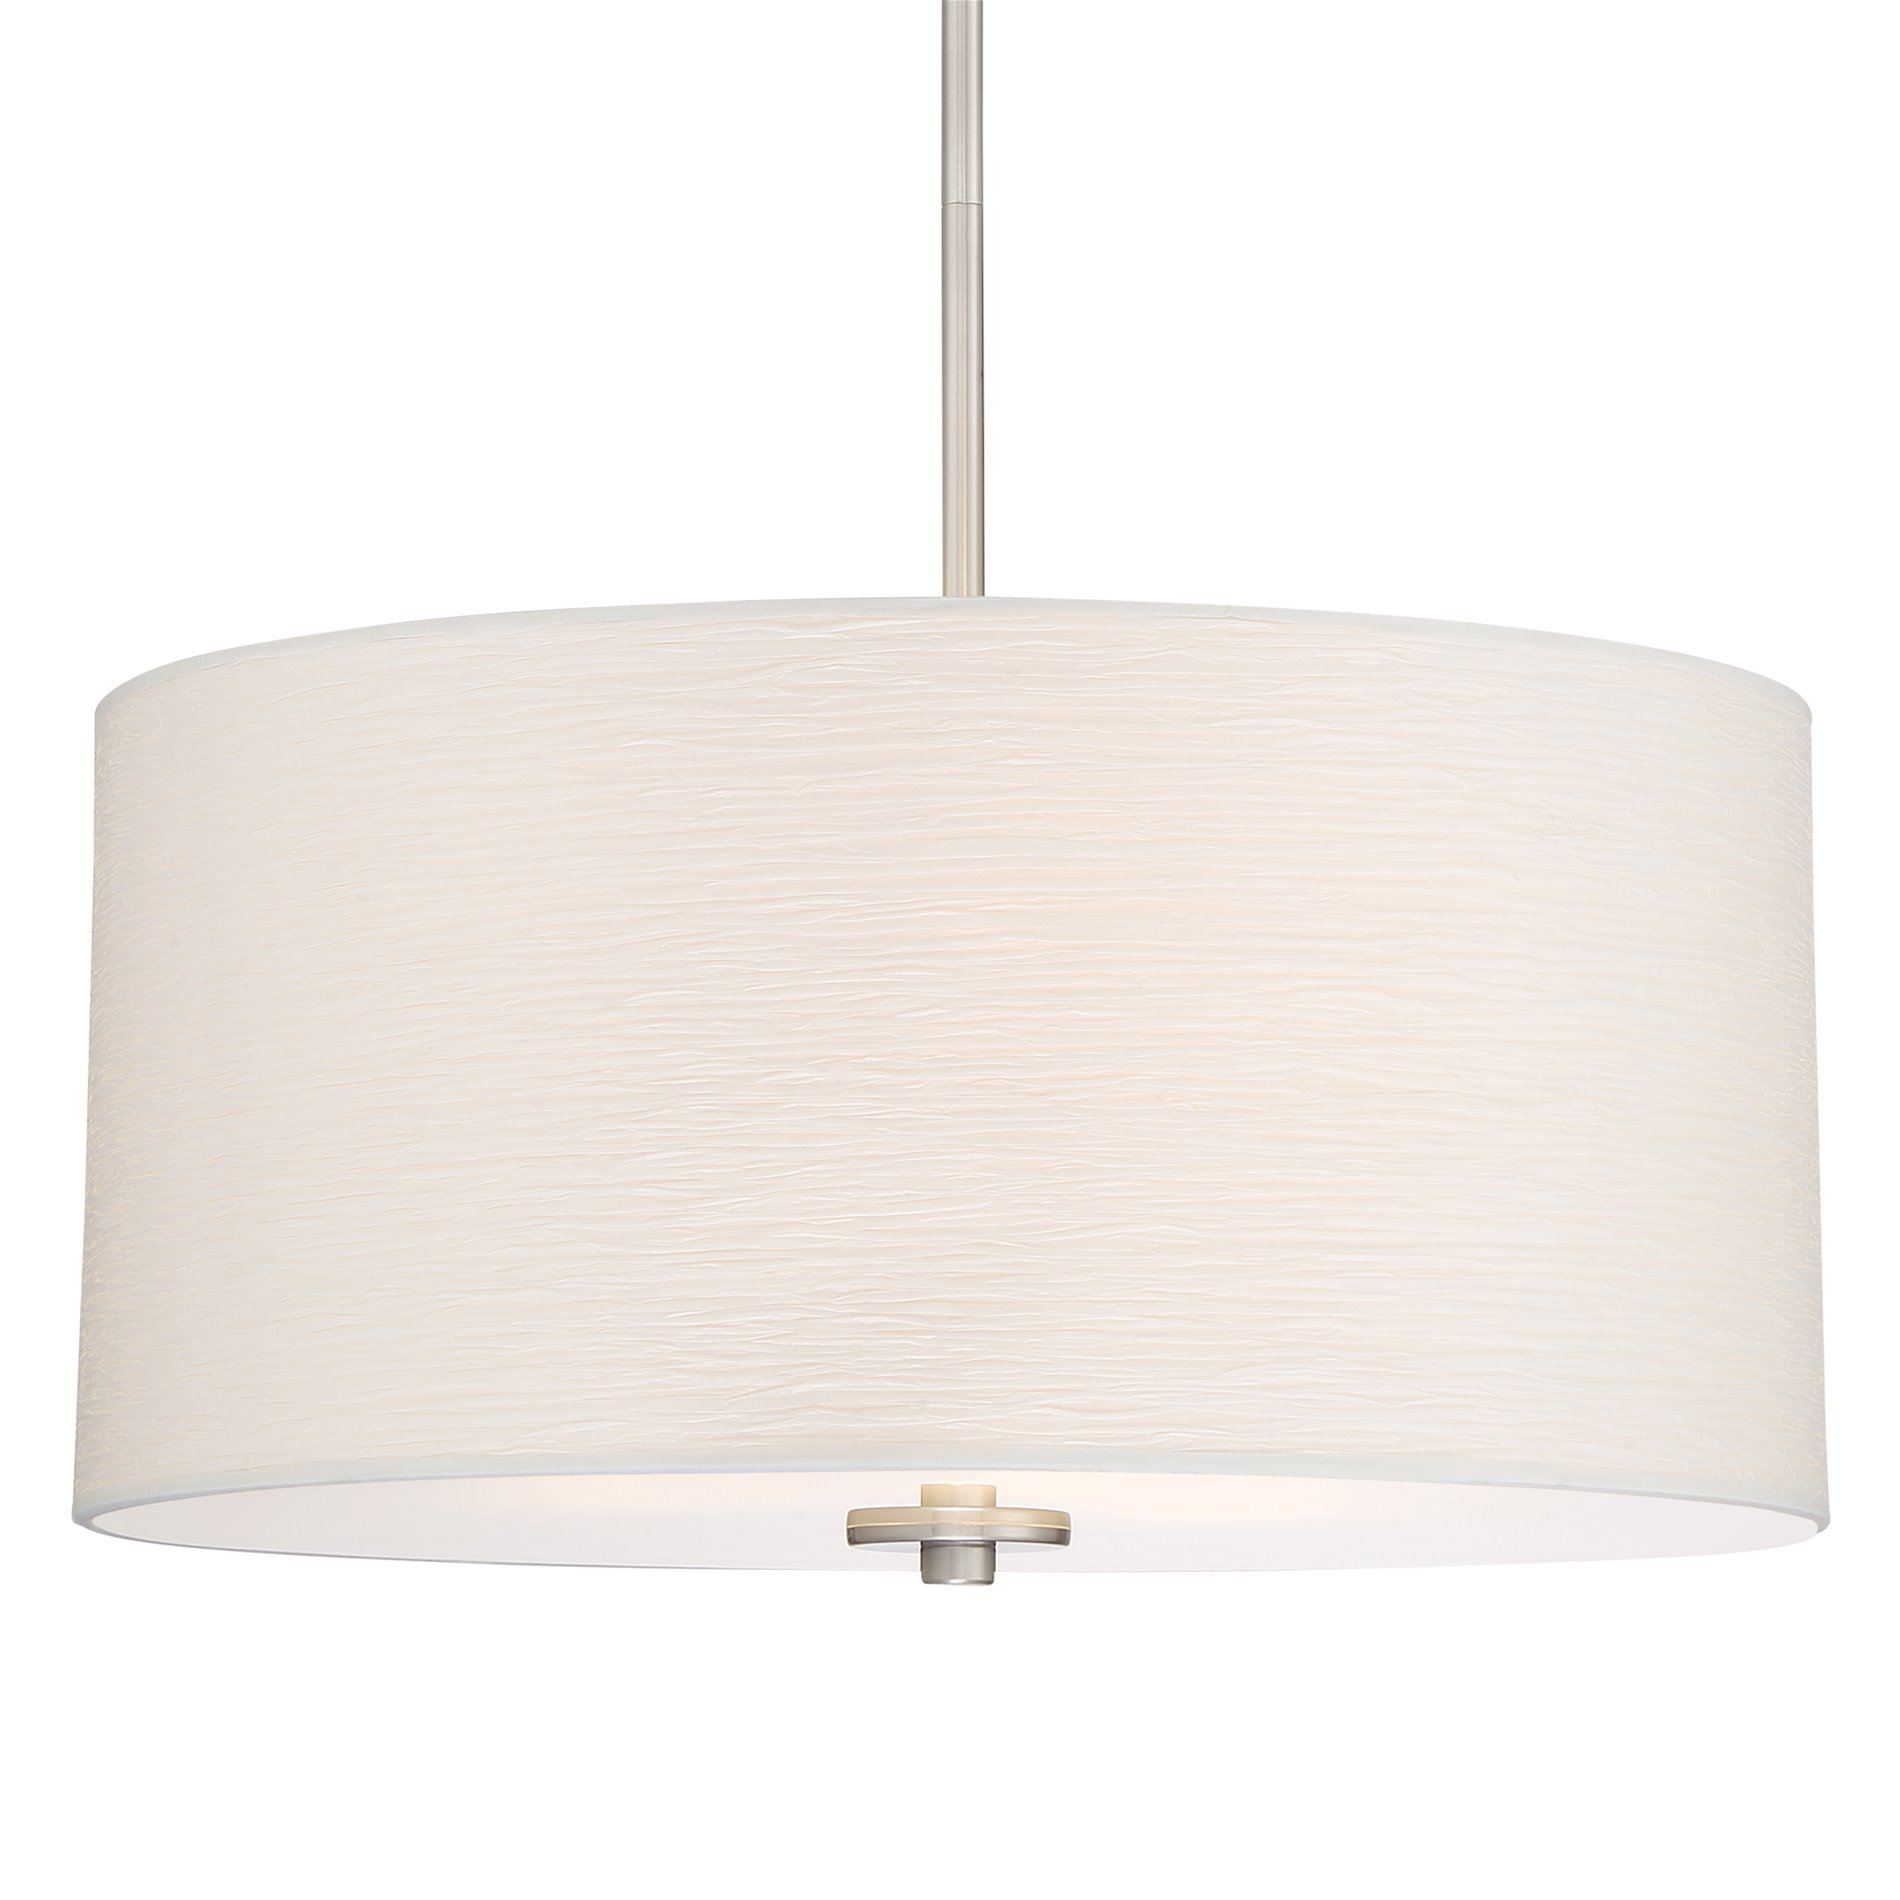 Kira Home Pearl 18'' Contemporary 3-Light Large Drum Chandelier + Glass Diffuser, Brushed Nickel Finish